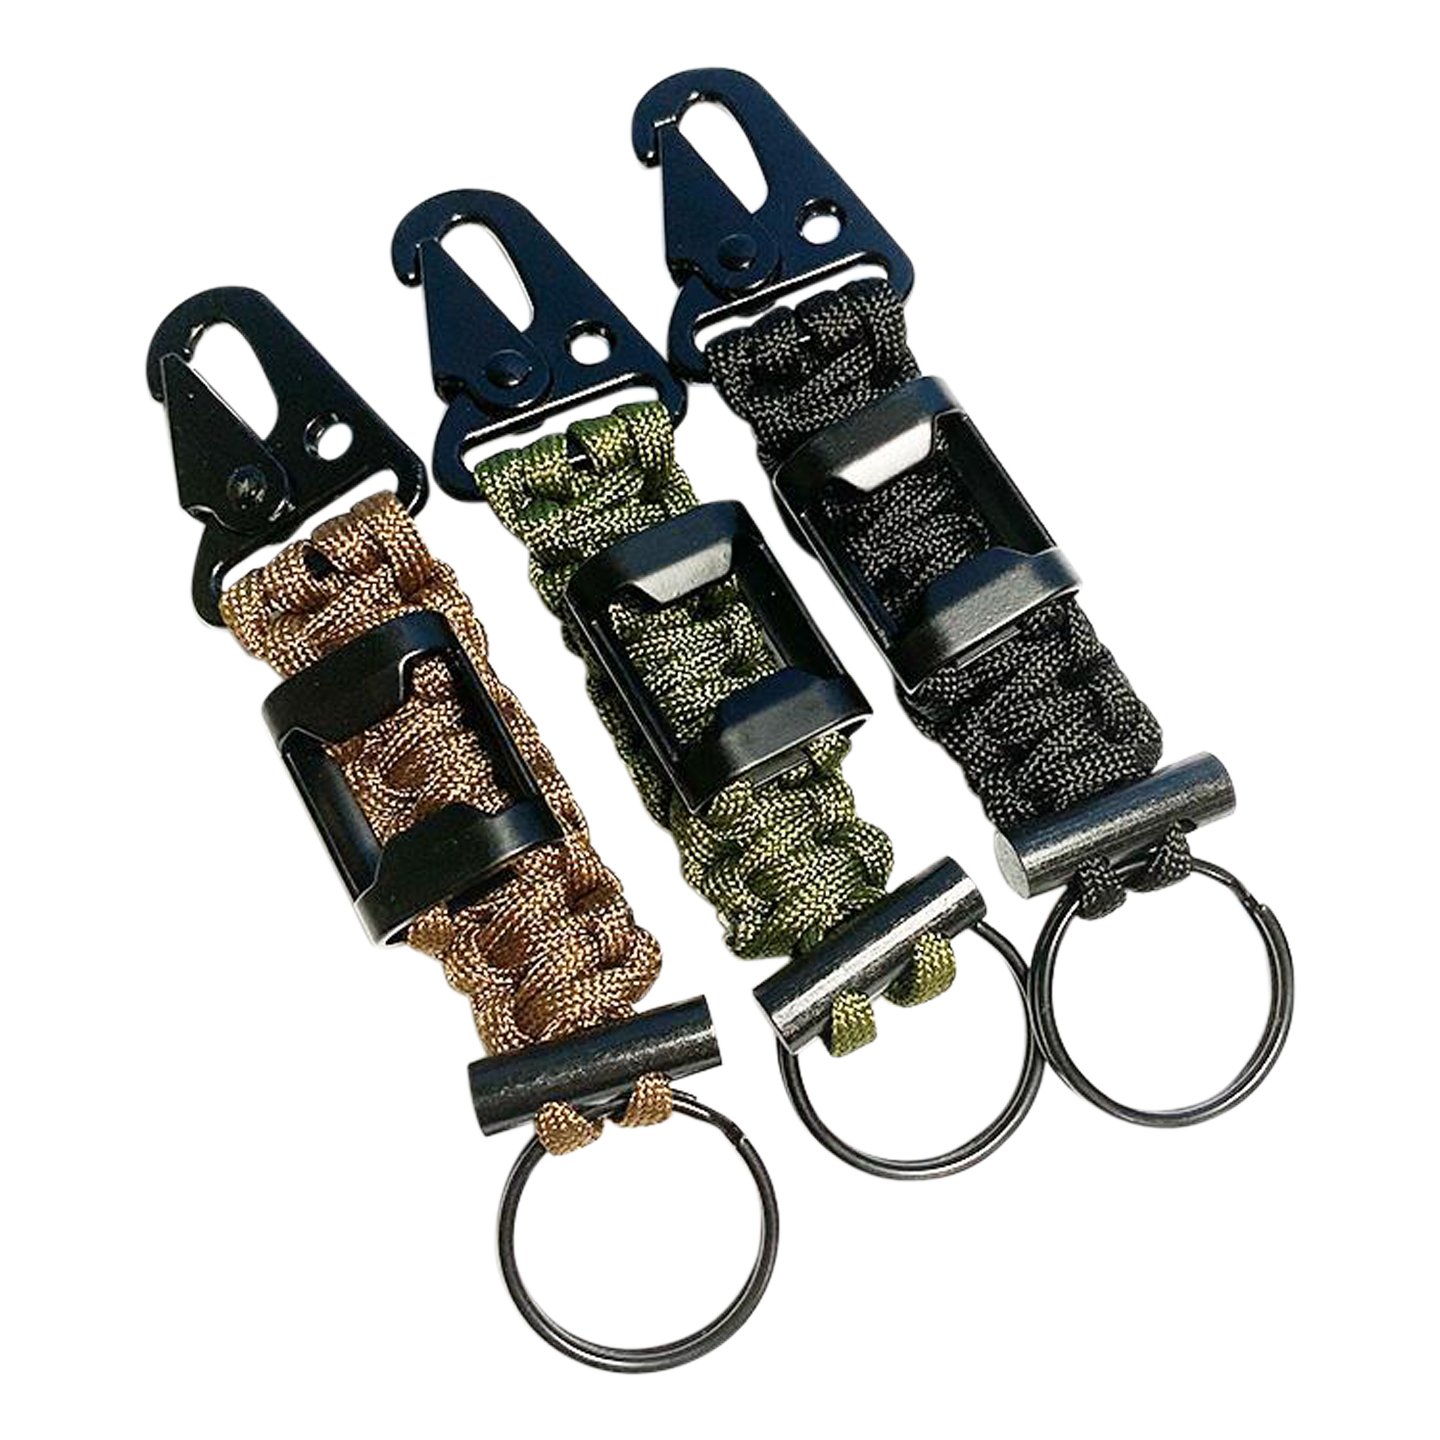 Accessories - Paracord Keychain W/ Bottle Opener